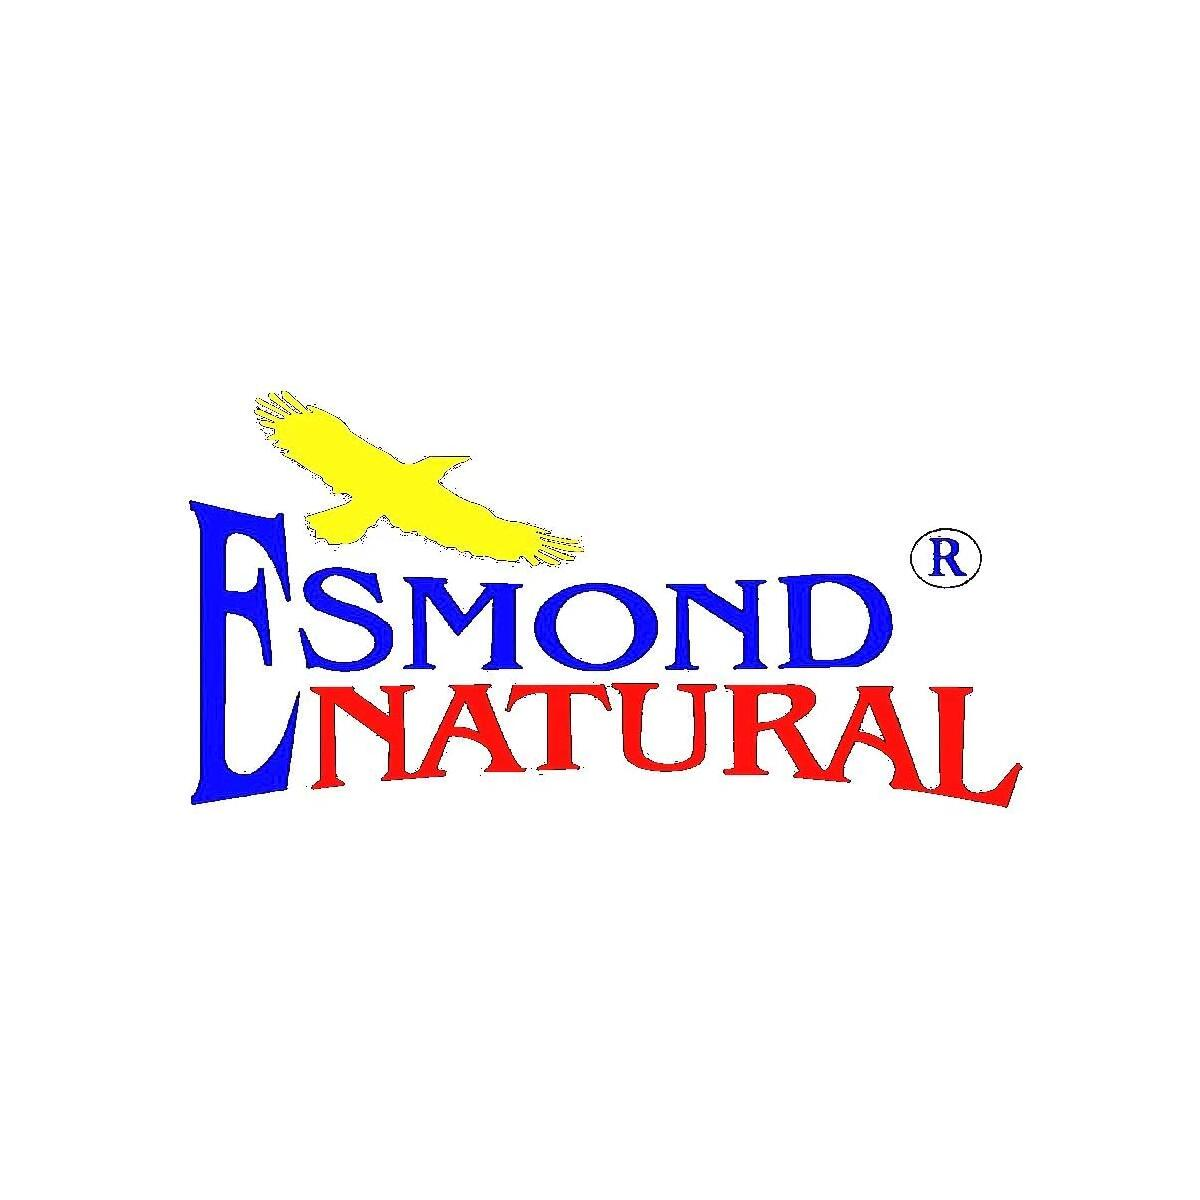 Esmond Natural: Pine Bark Complex (Antioxidants to Protect Cells from Free Radical Damage), GMP, Natural Product Assn Certified, Made in USA-150mg, 60 Capsules